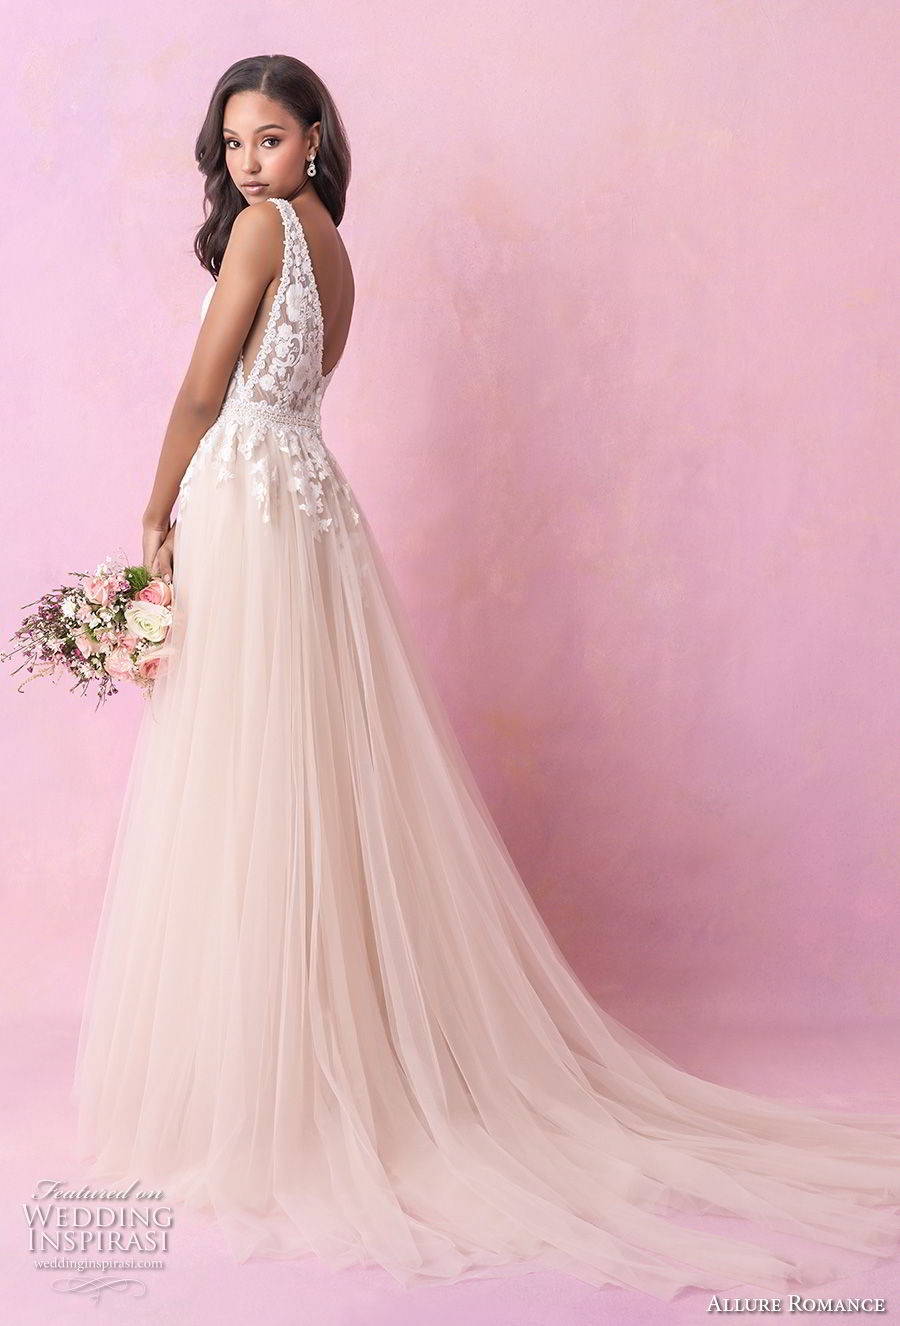 allure romance fall 2018 bridal sleeveless deep v neck heavily embellished bodice romantic blush soft a  line wedding dress open v back chapel train (3) bv